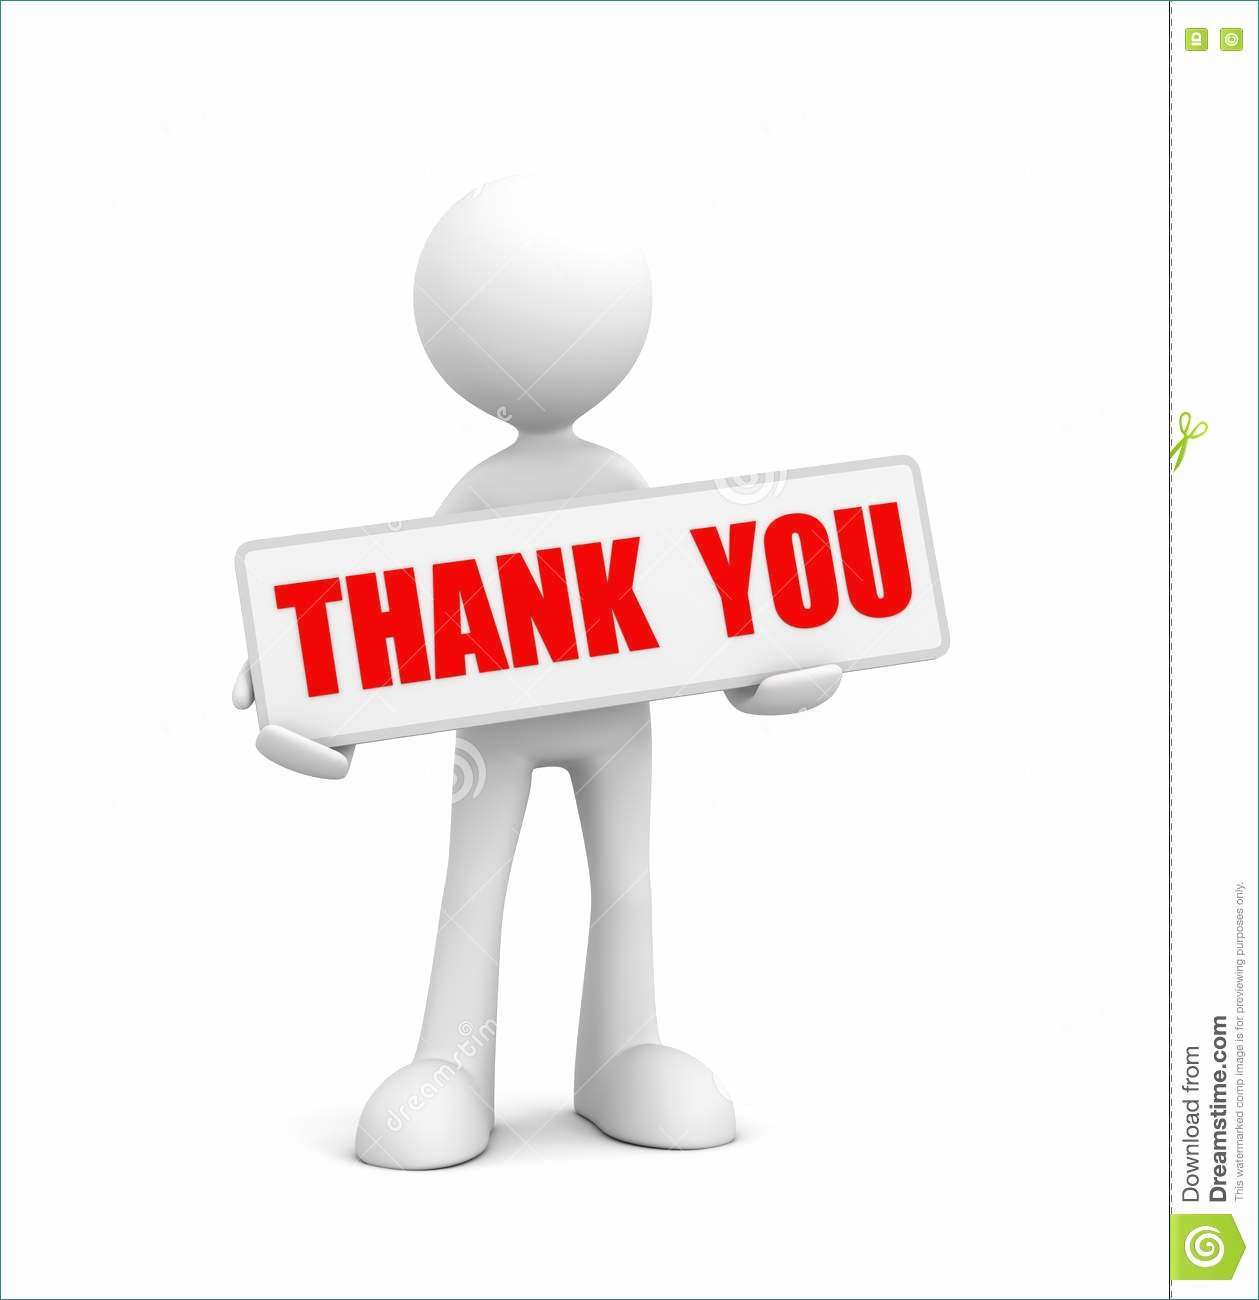 Thank you clipart for powerpoint picture free stock Presenter media powerpoint Likeable 3D clipart thank you ... picture free stock